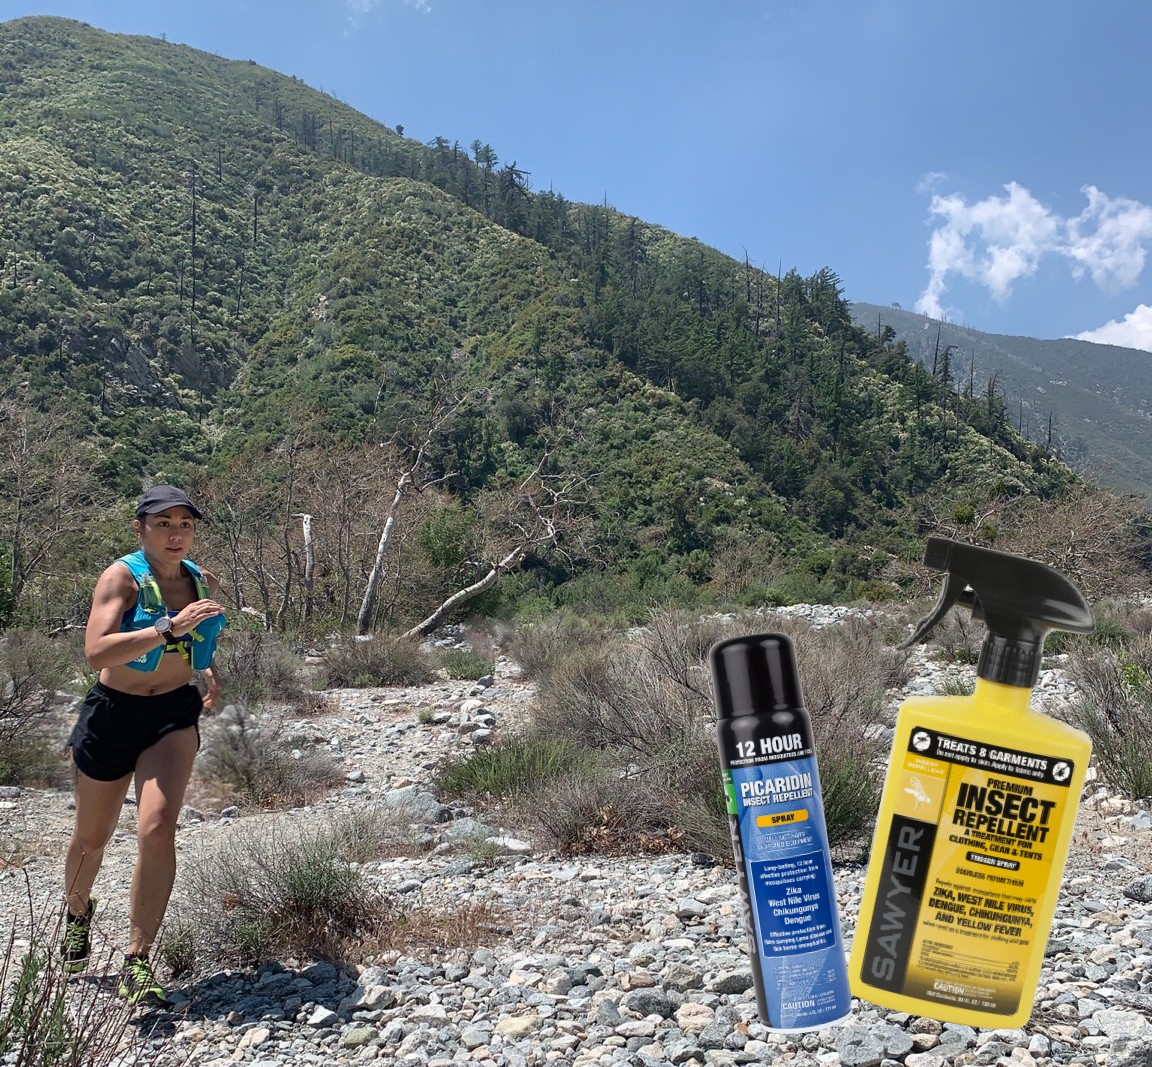 sawyer insect repellent, trail running